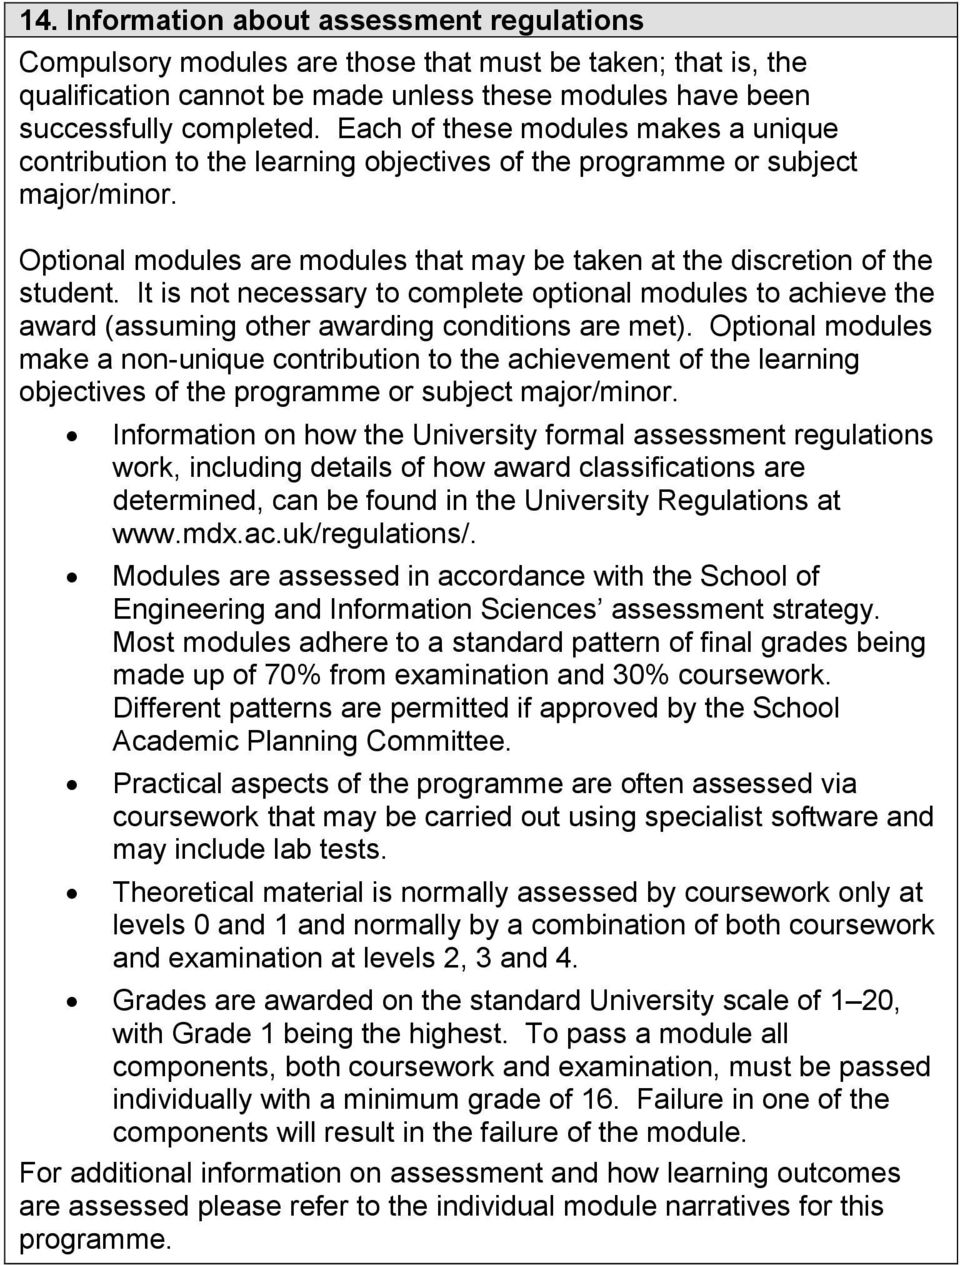 It is not necessary to complete optional modules to achieve the award (assuming other awarding conditions are met).